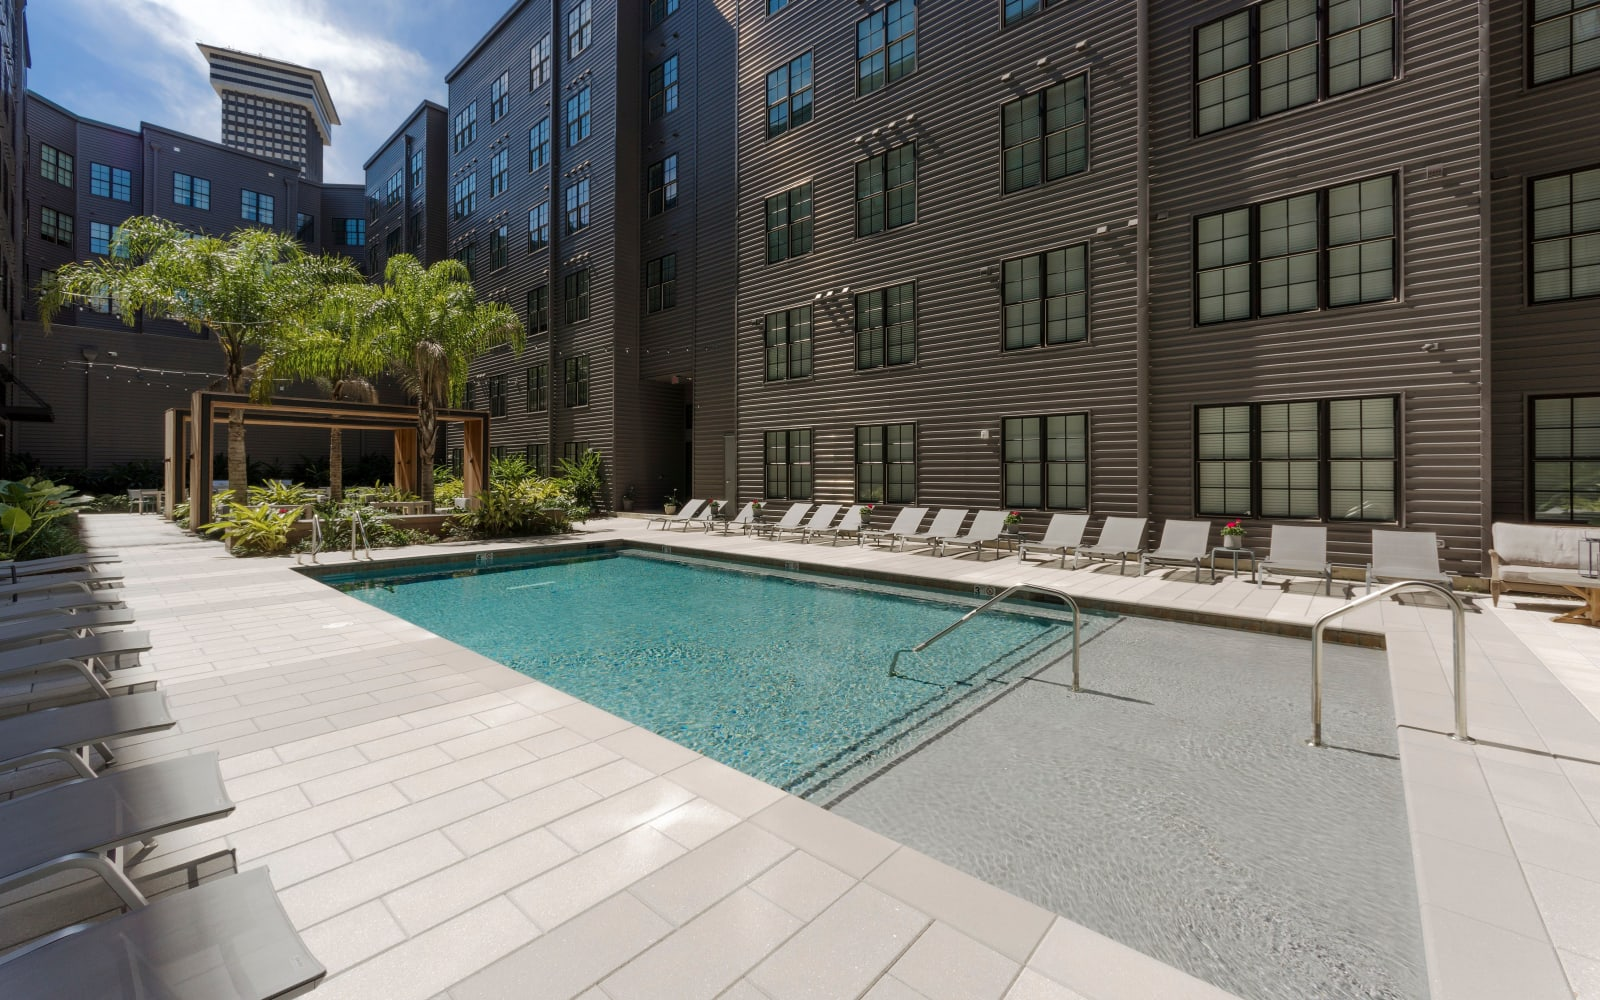 Swimming Pool at The Beacon at South Market in New Orleans, Louisiana